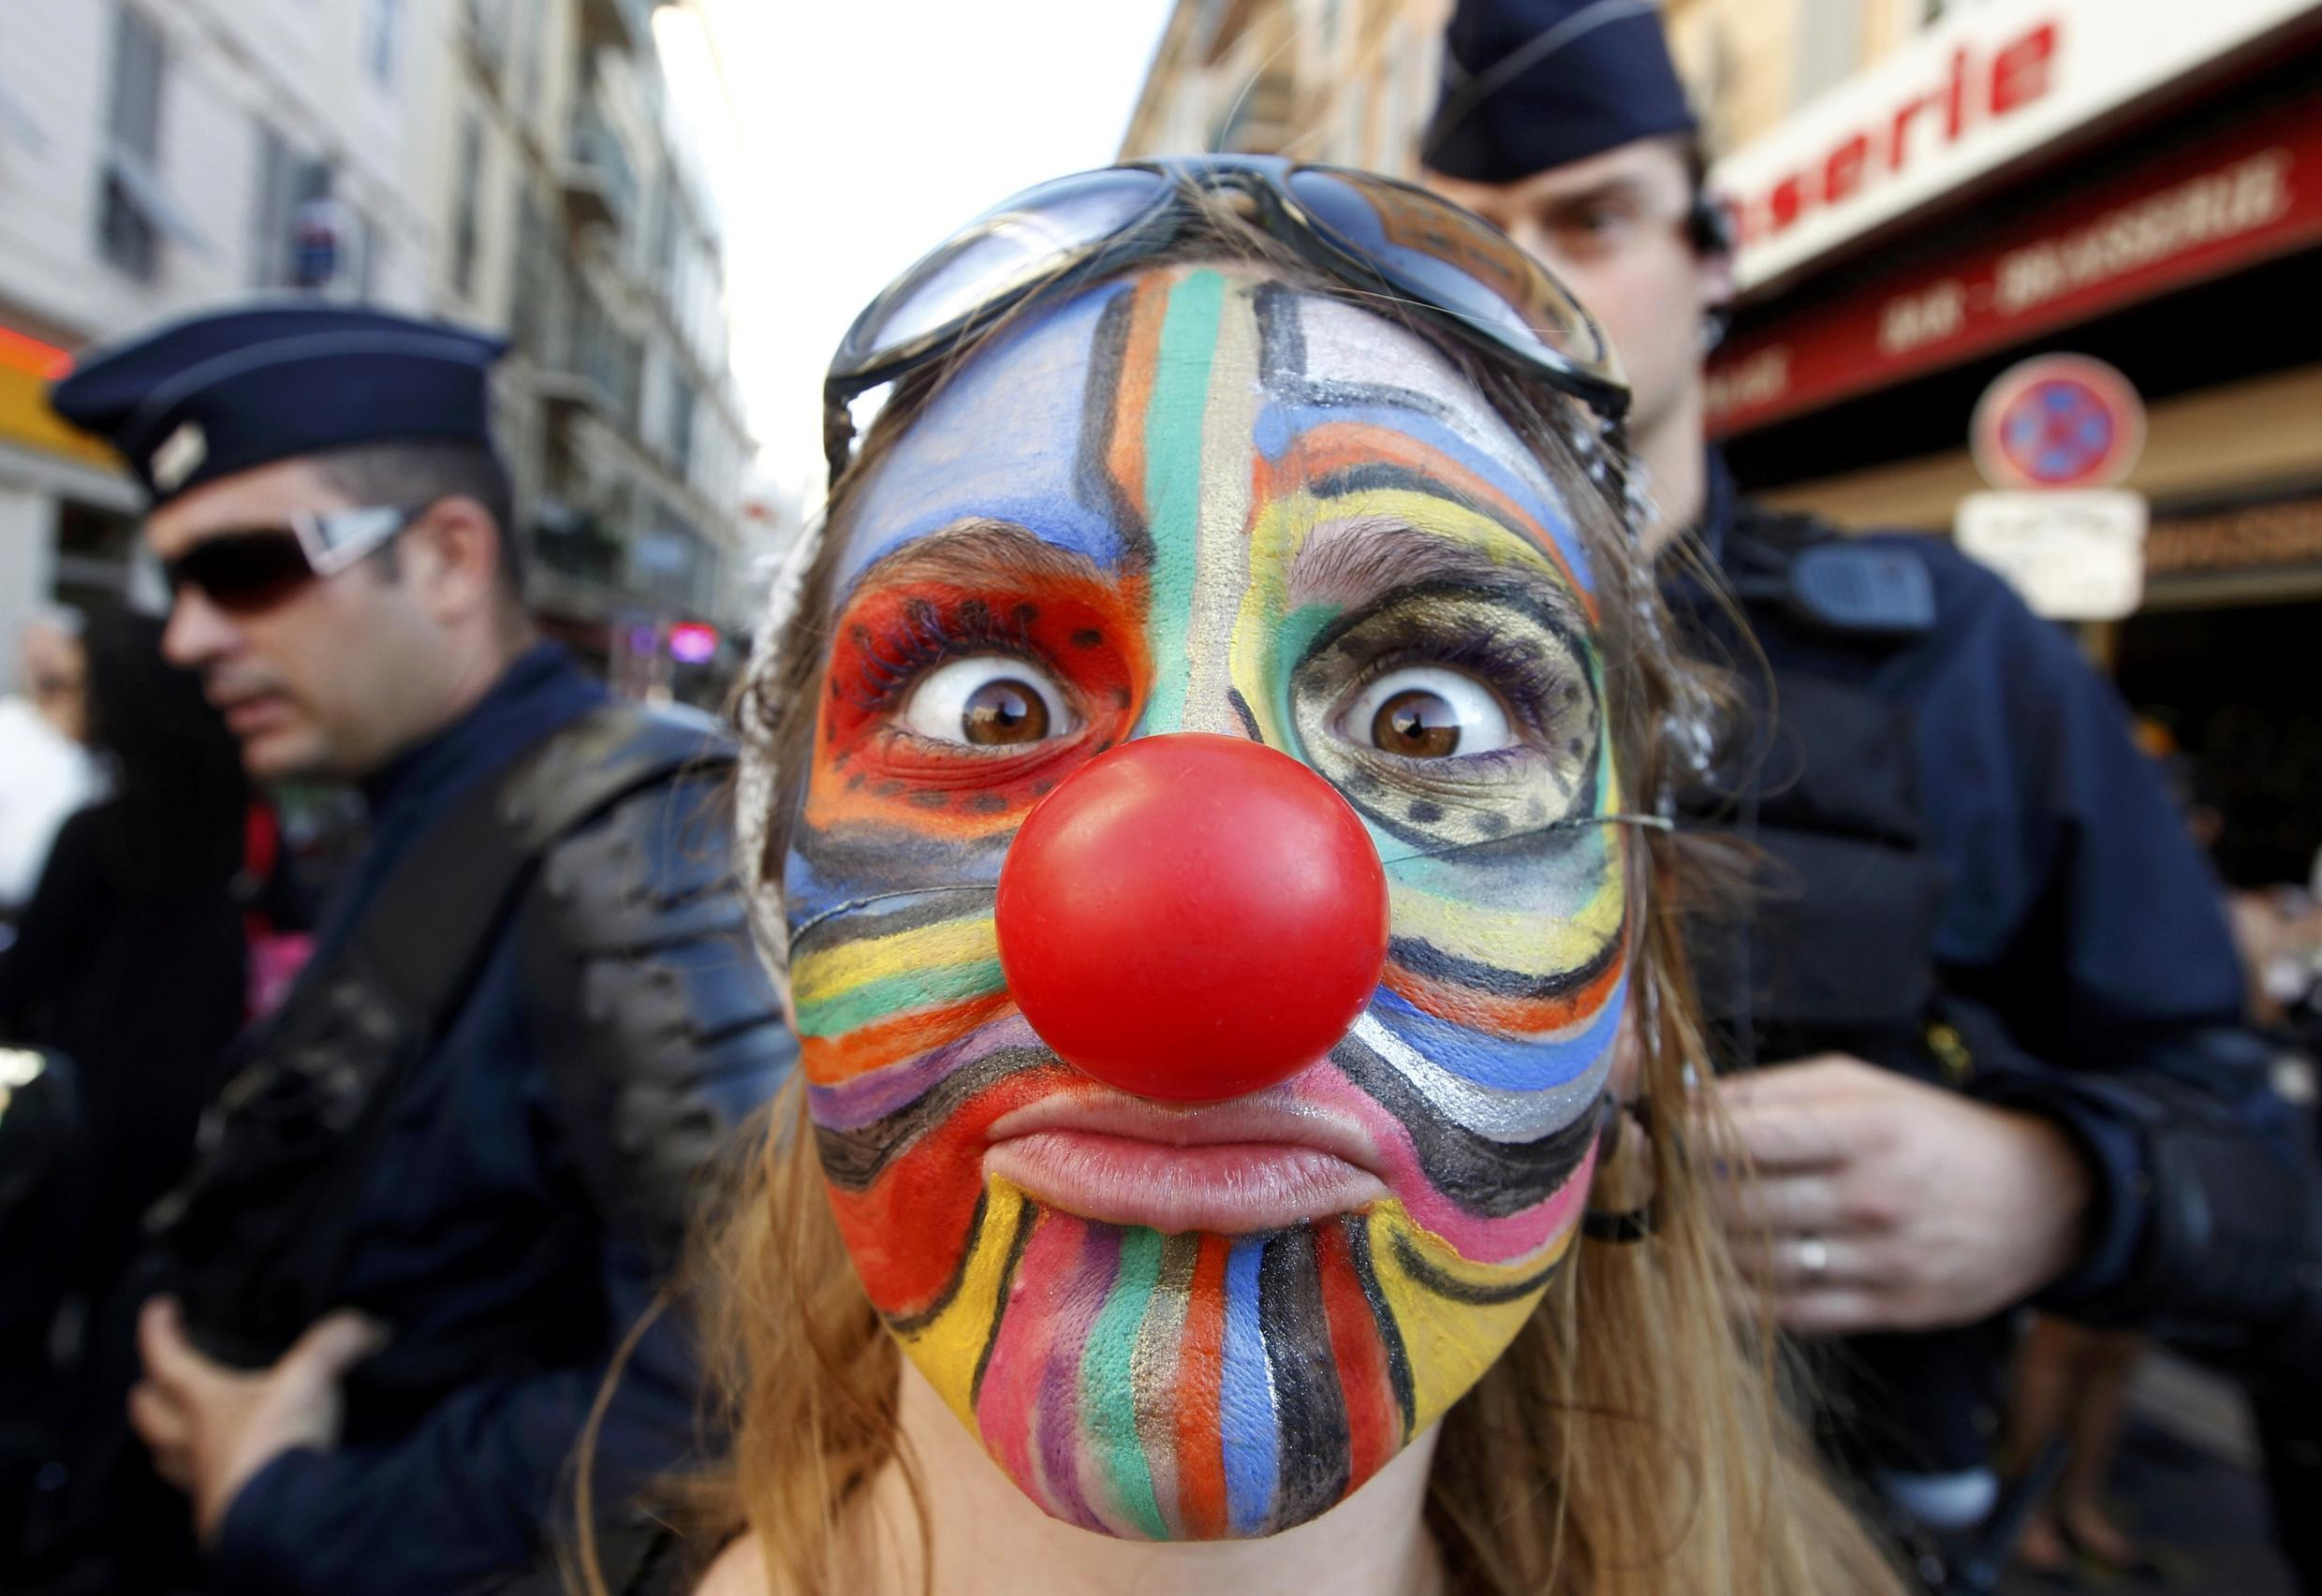 A demonstrator with a painted face during the Africa-France summit in Nice